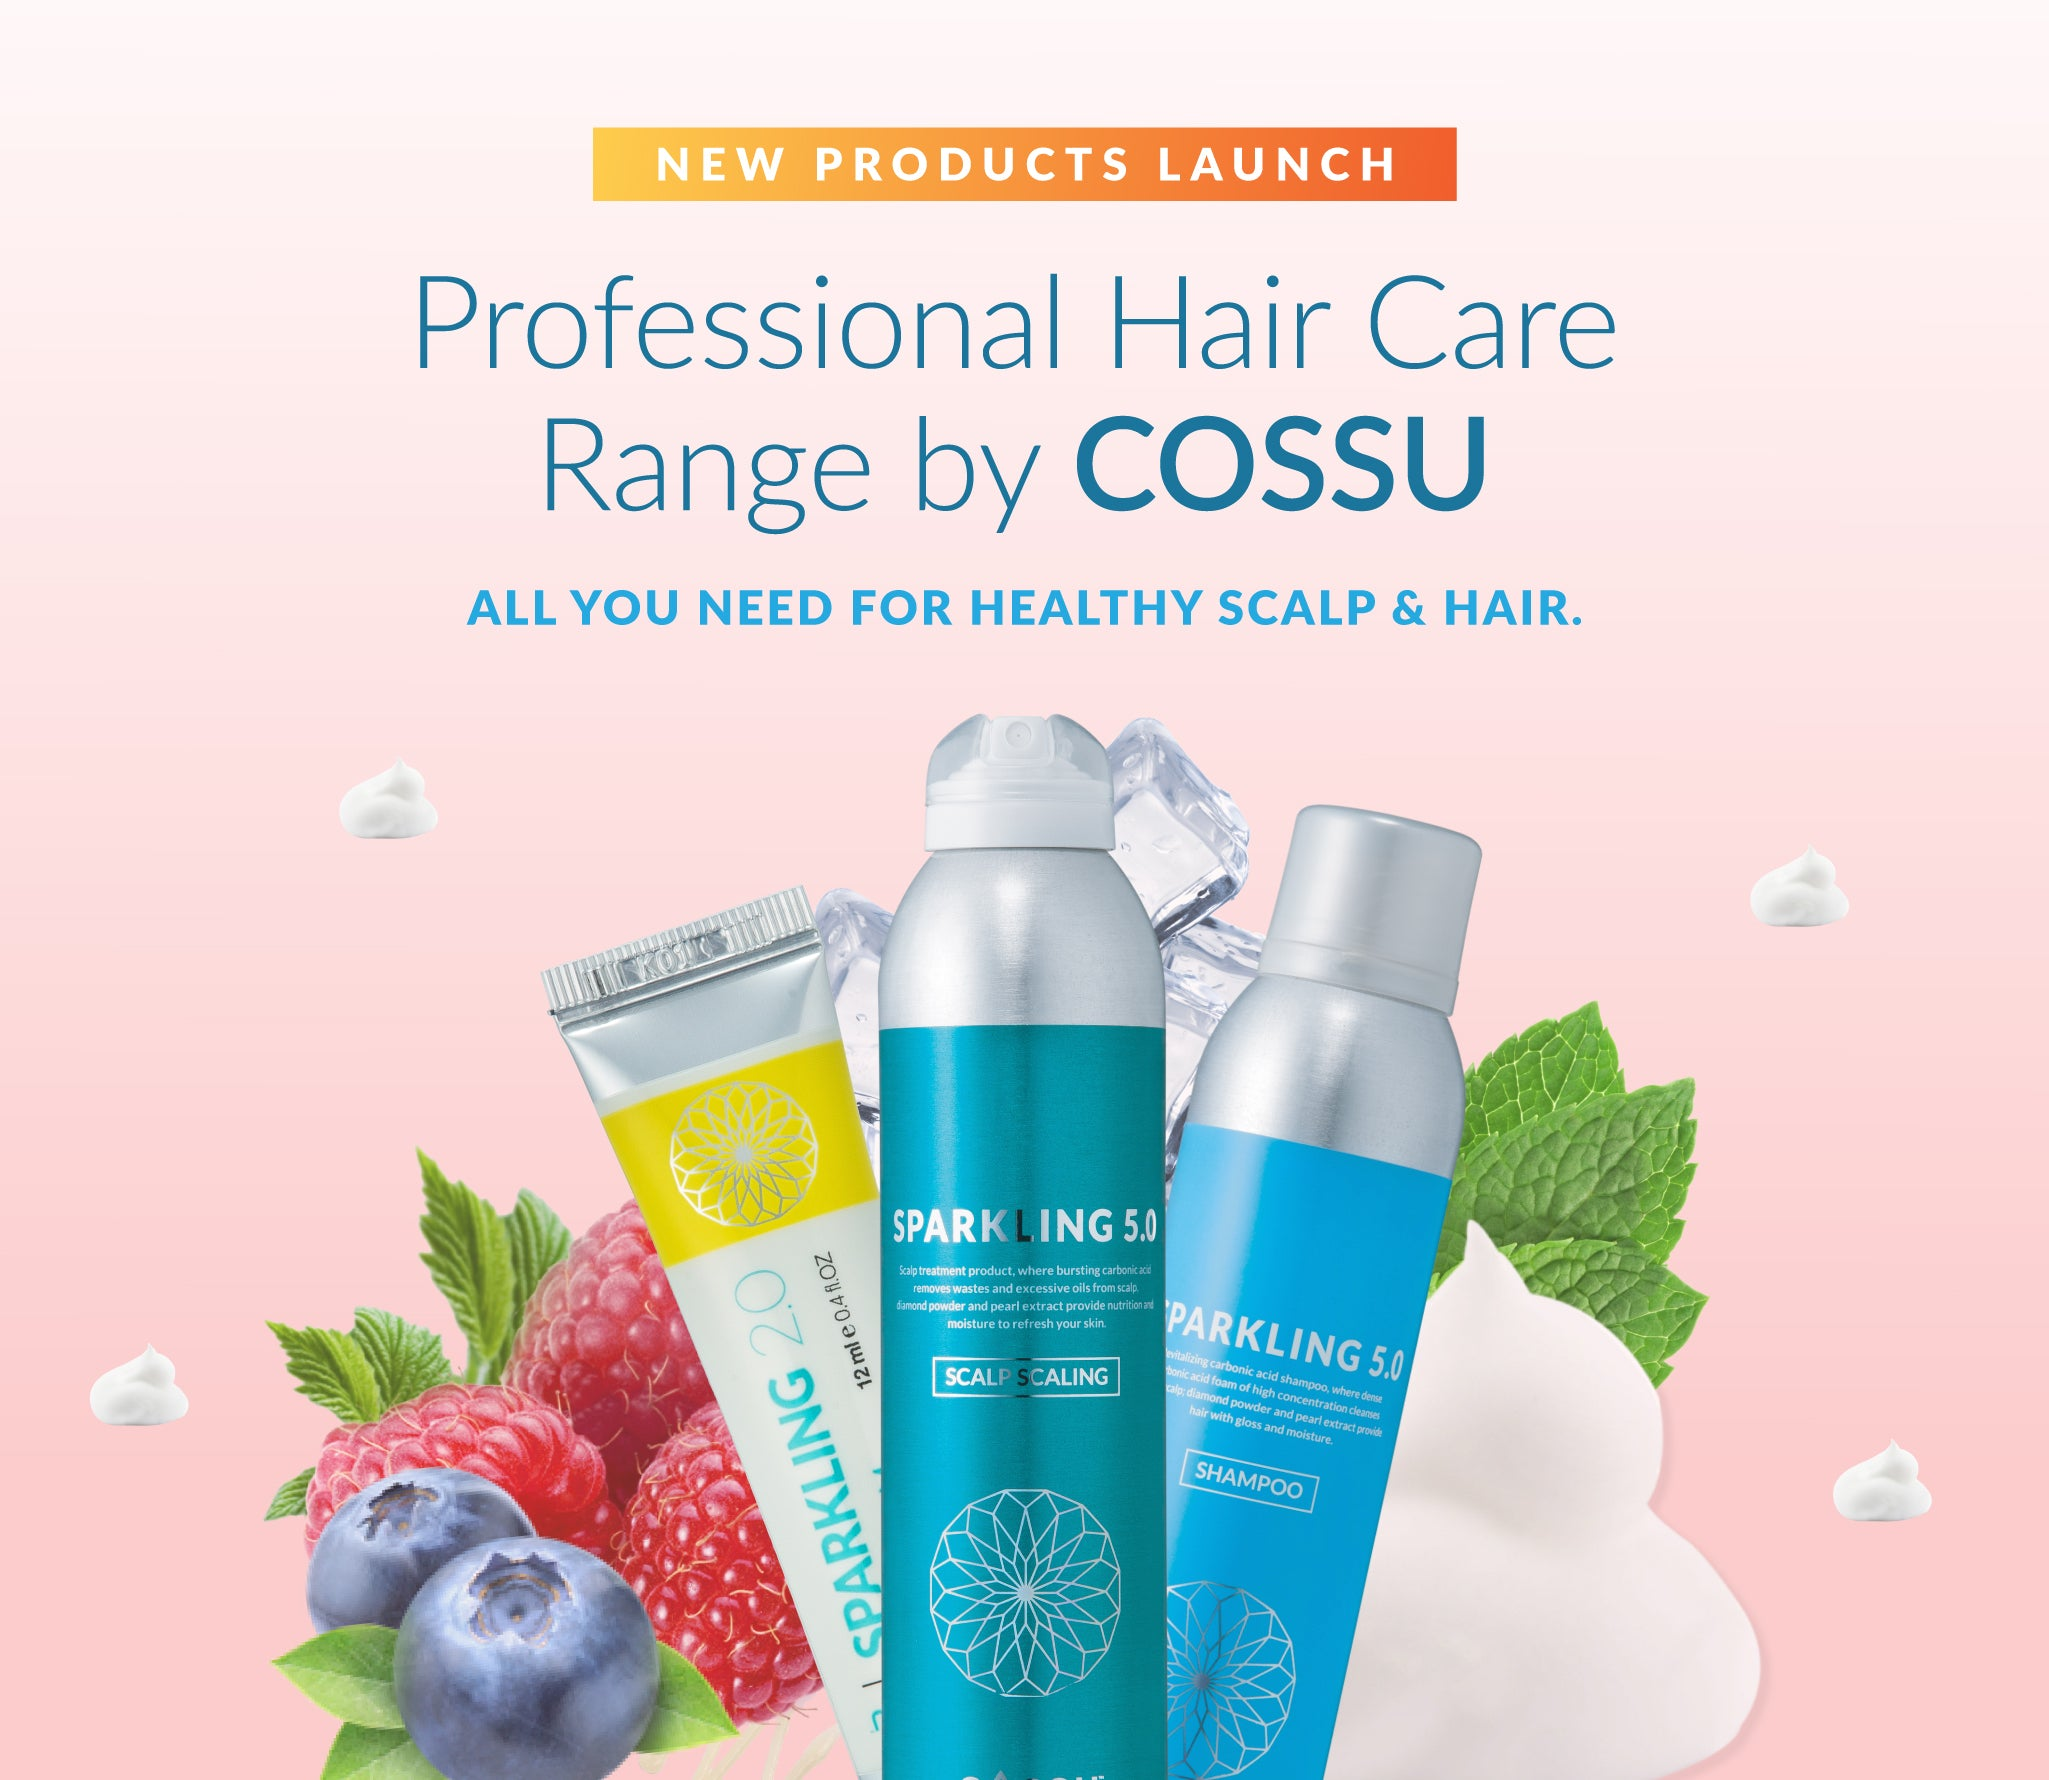 Check out our latest launch by Cossu Professional Hair Care Range!